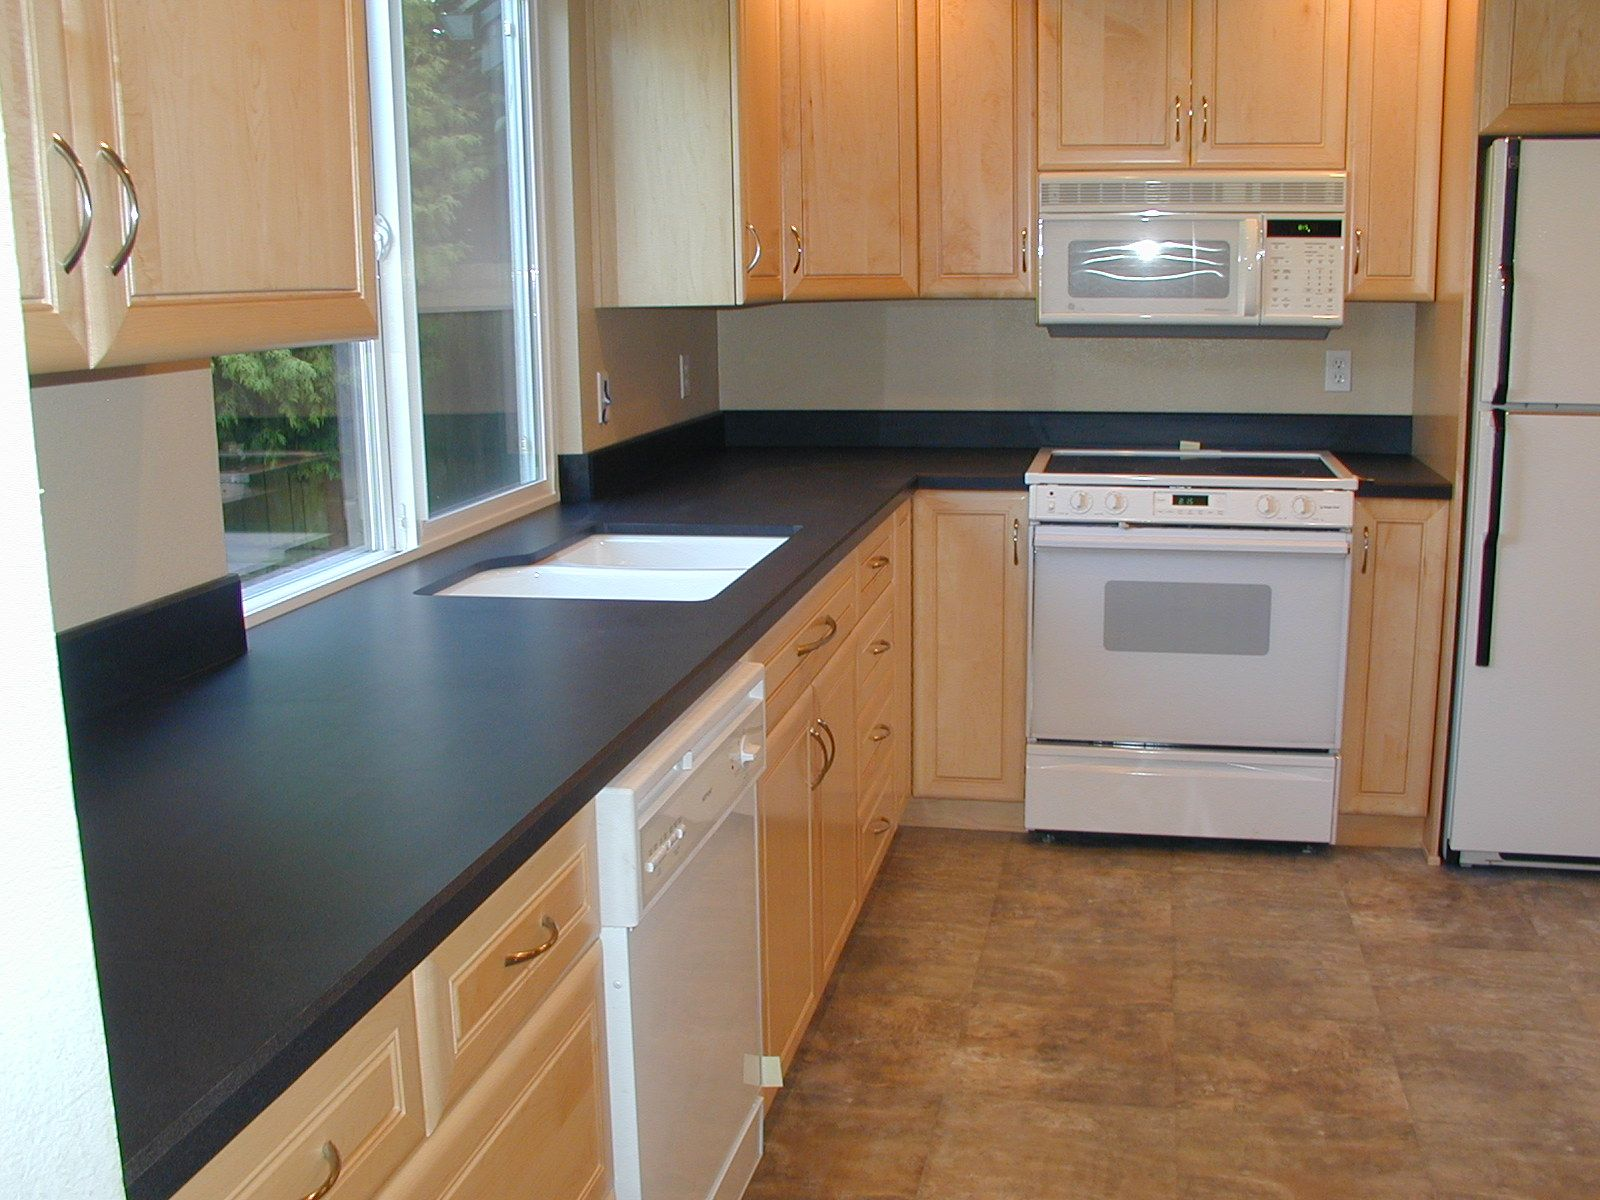 How Much Does It Cost To Install Laminate Countertops Kitchen Ideas With Dark Countertops Countertop Design